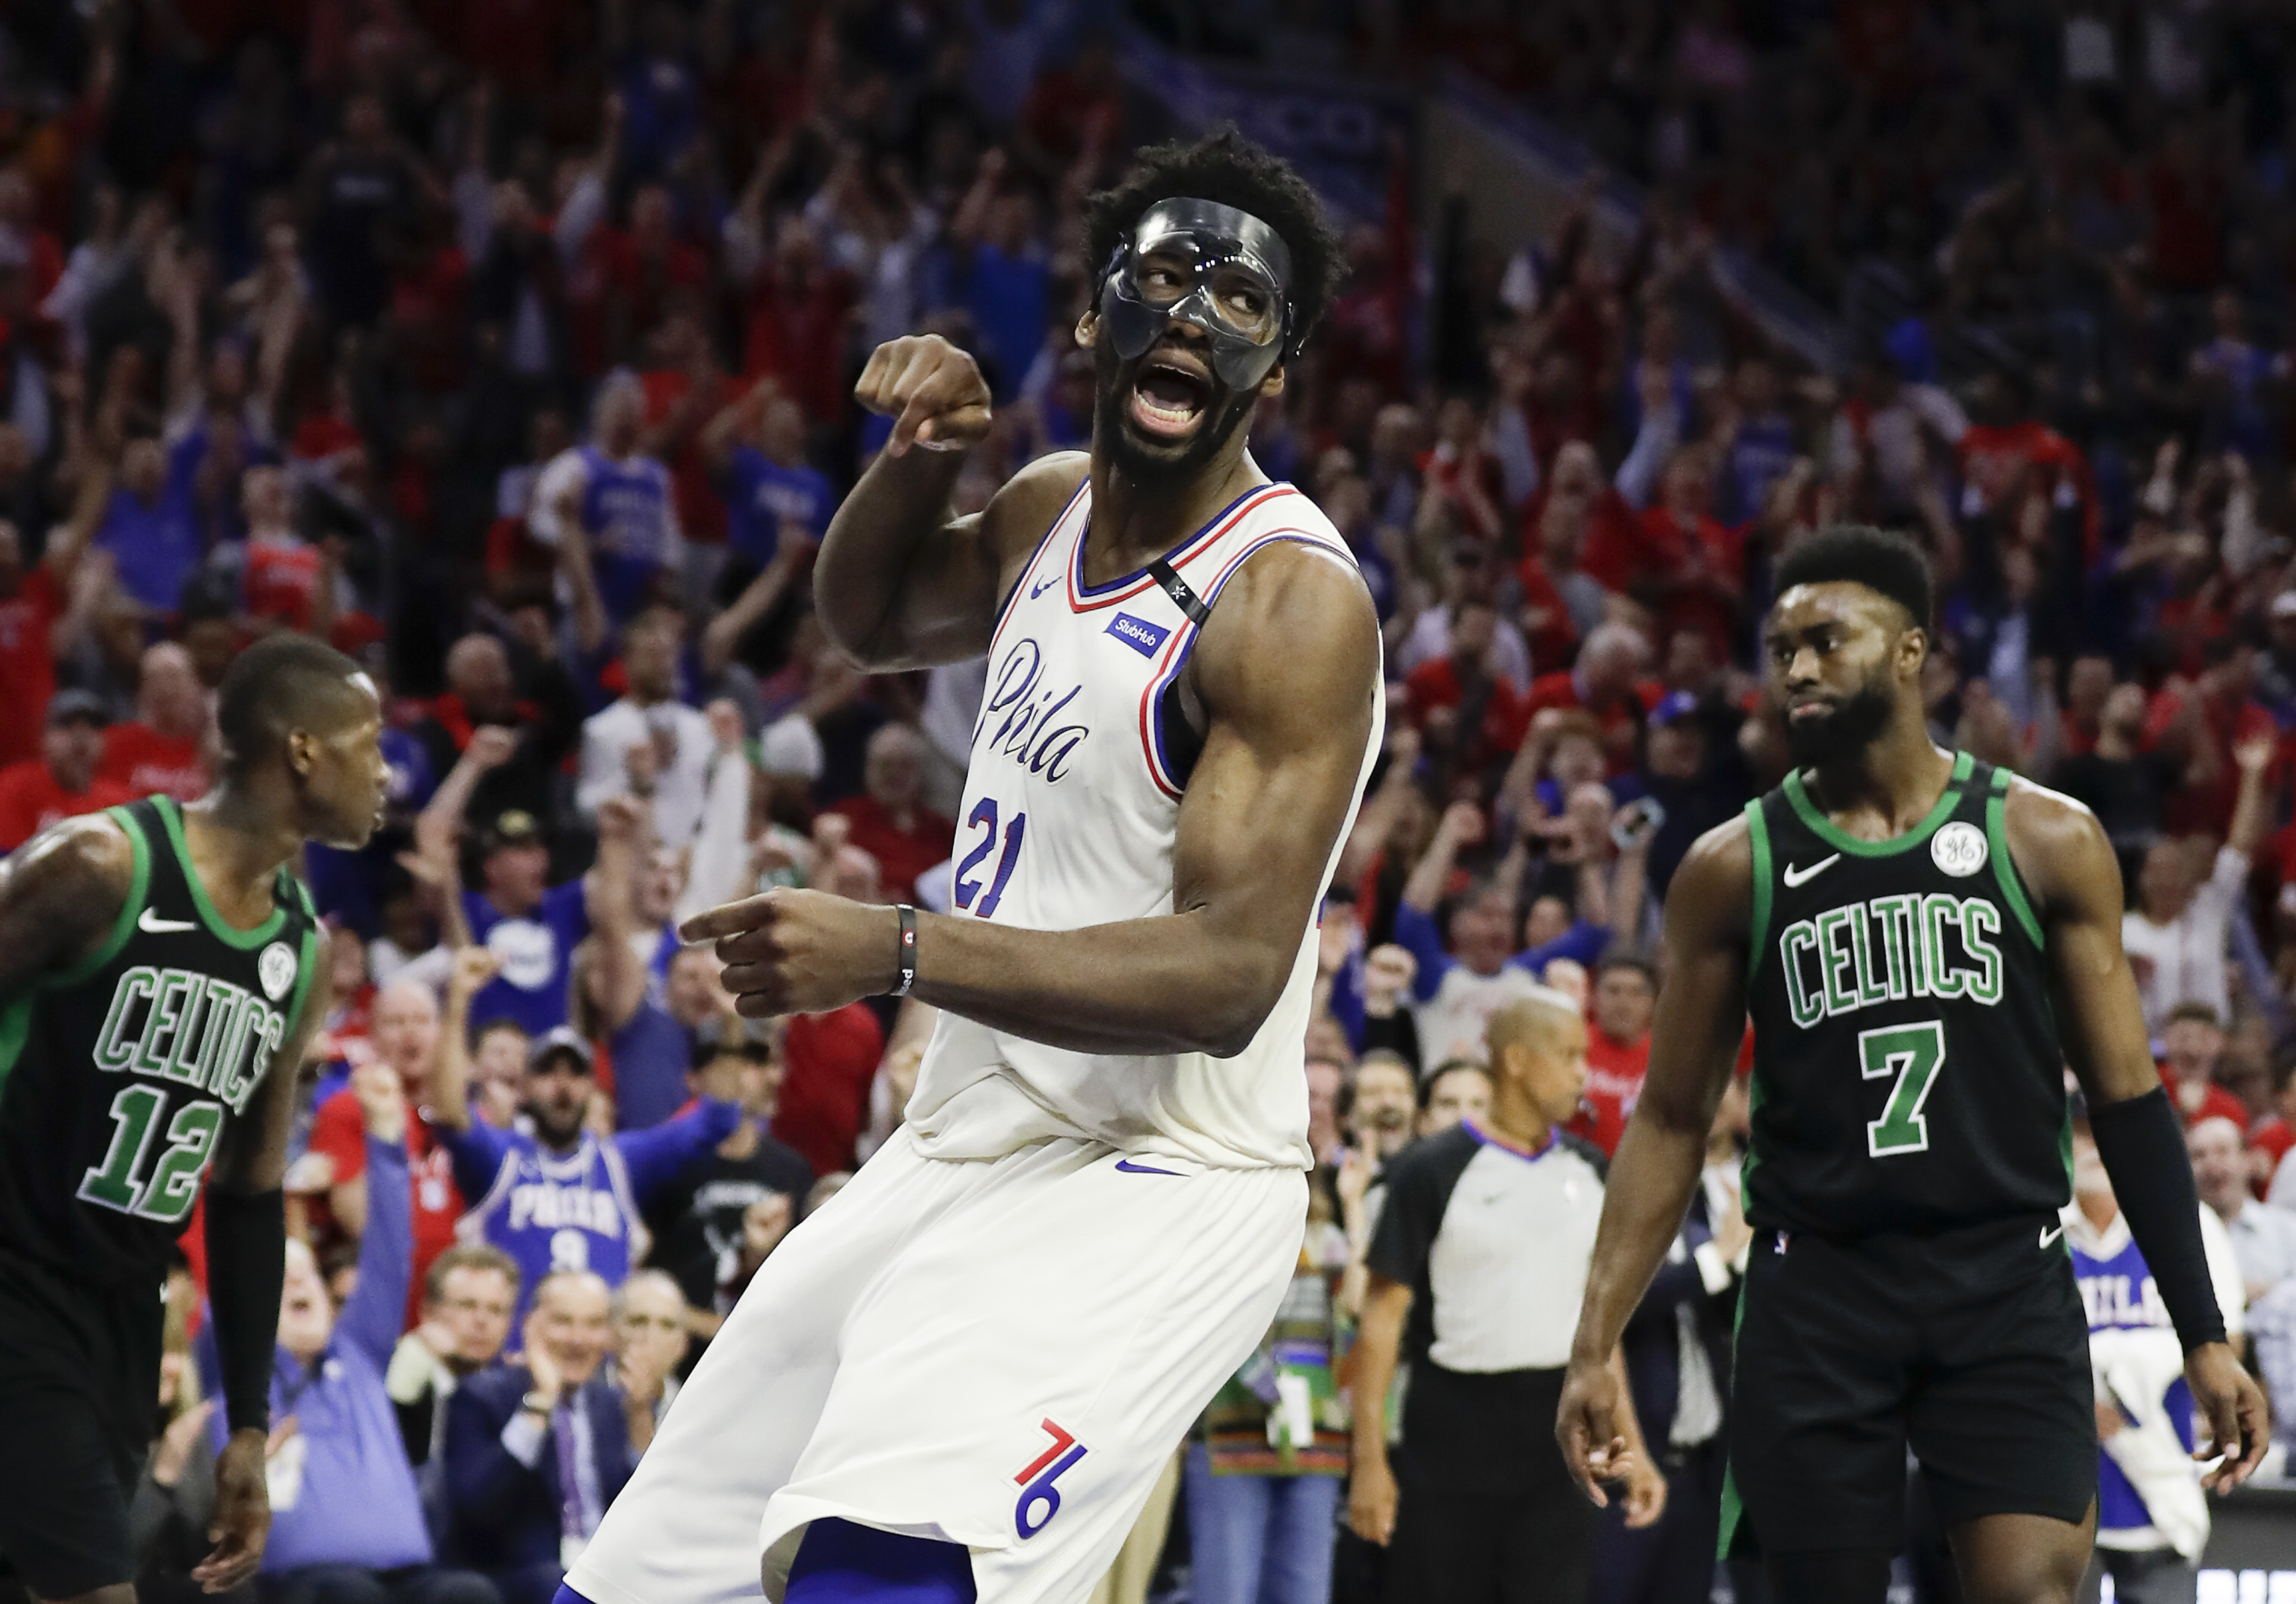 Joel Embiid celebrates after dunking past the Celtics Terry Rozier (left) and Jaylen Brown during the Eastern Conference semifinals.